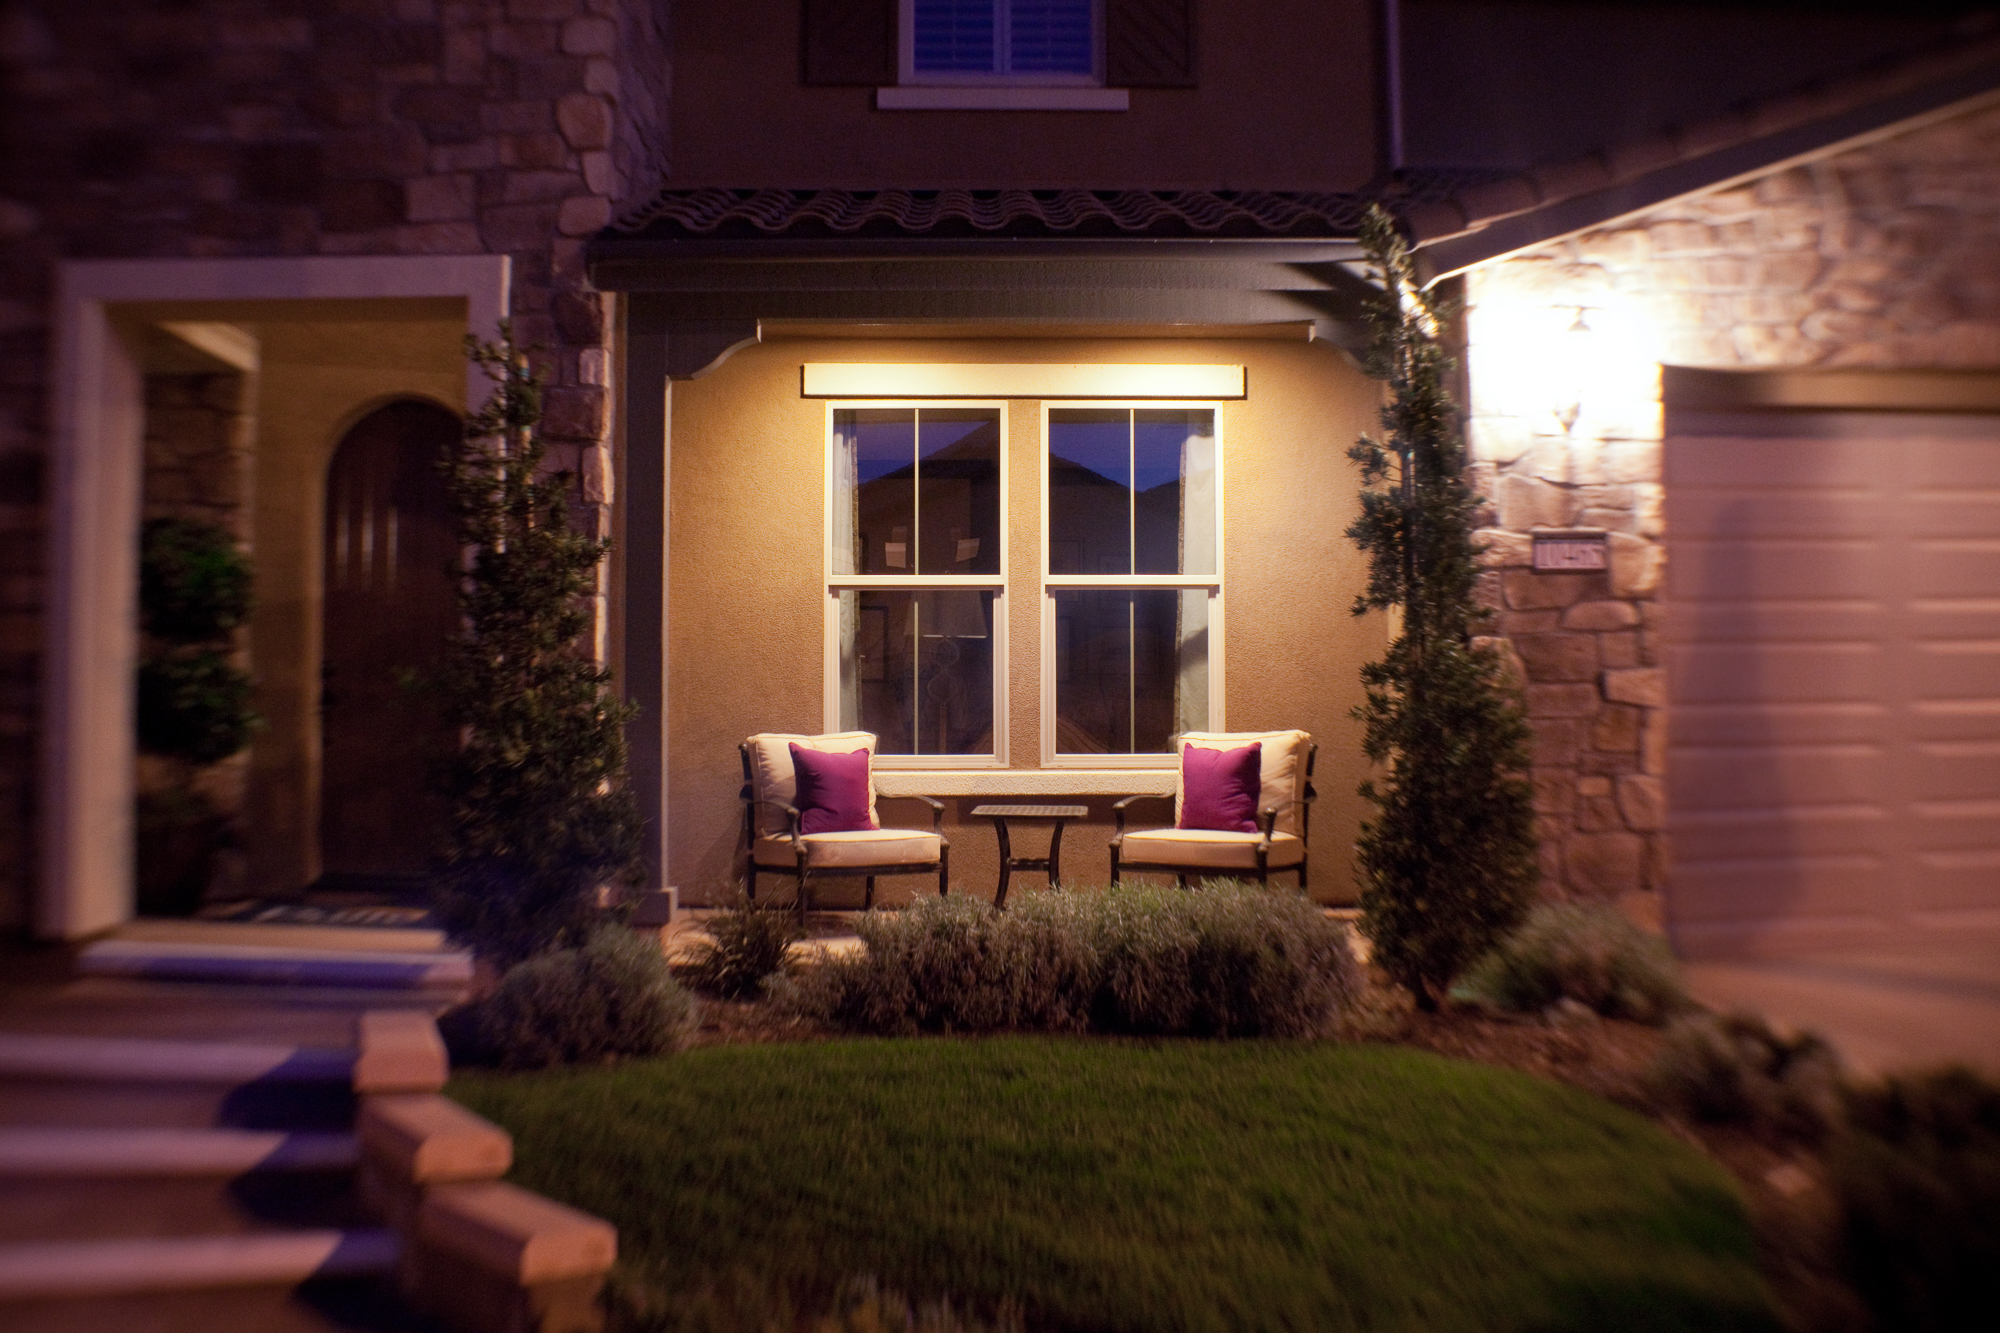 Stoop: The Willows by Pulte Homes